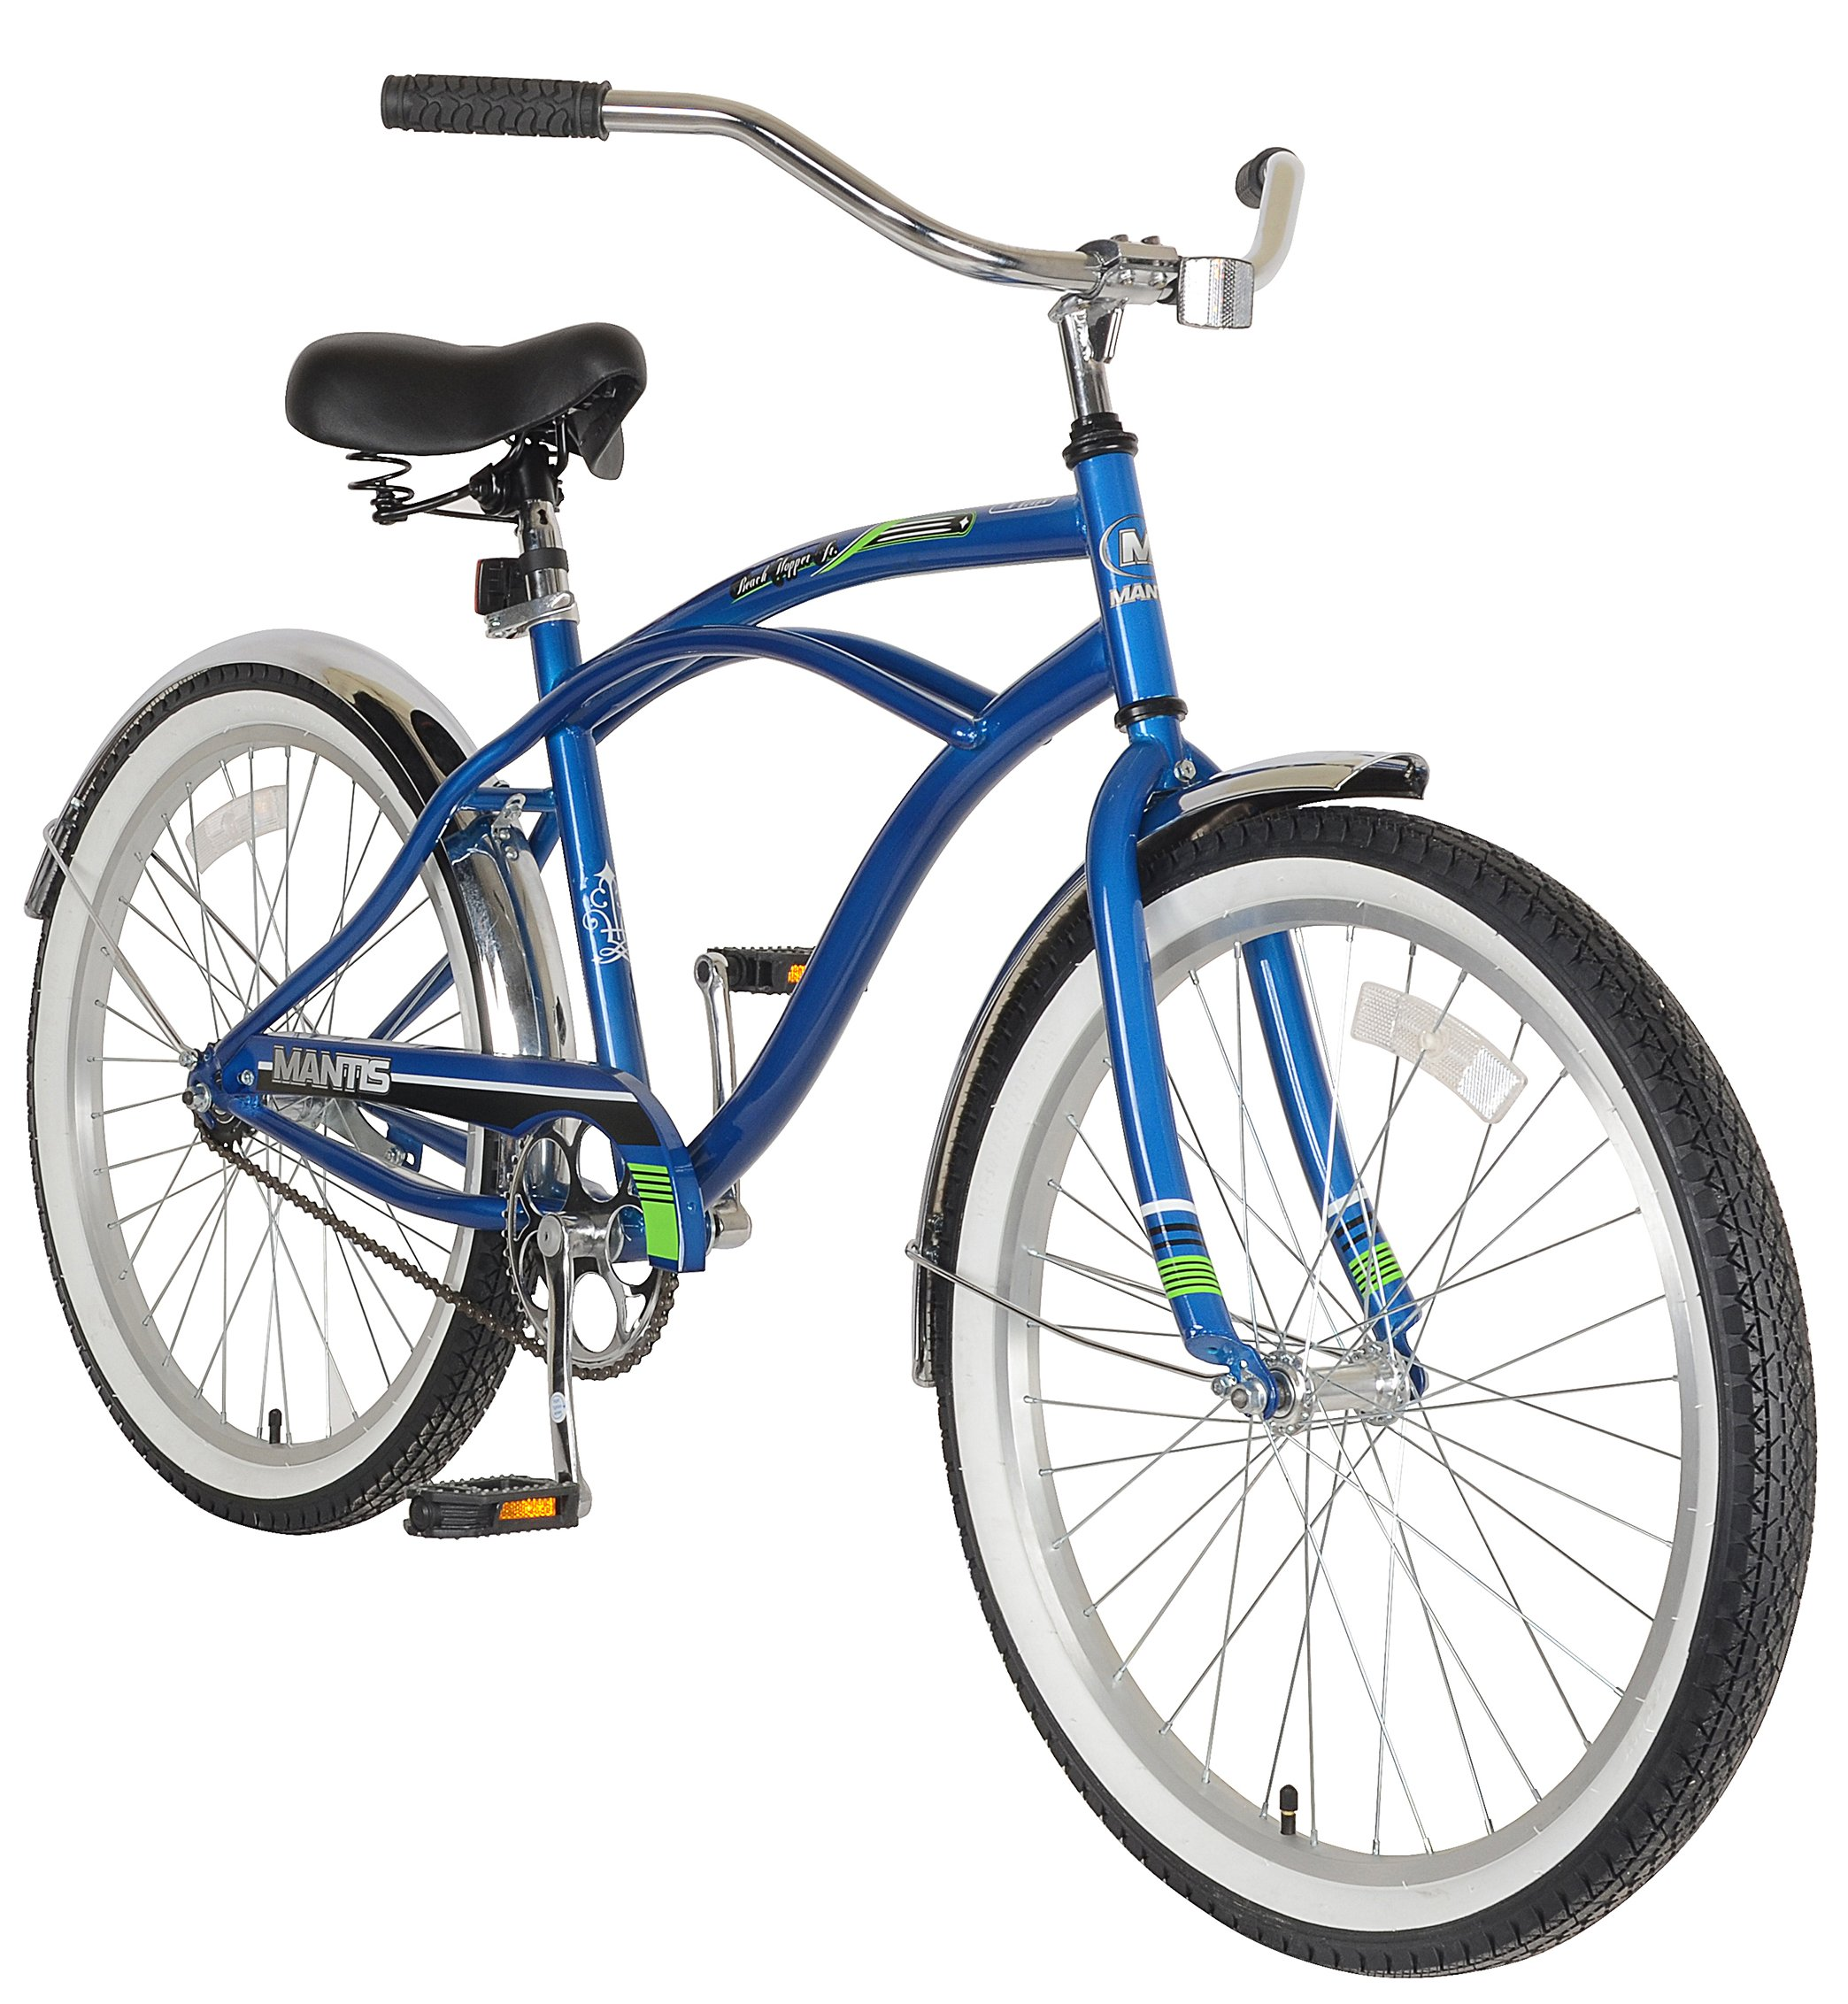 Mantis Beach Hopper Jr 24 Beach Cruiser Bicycle